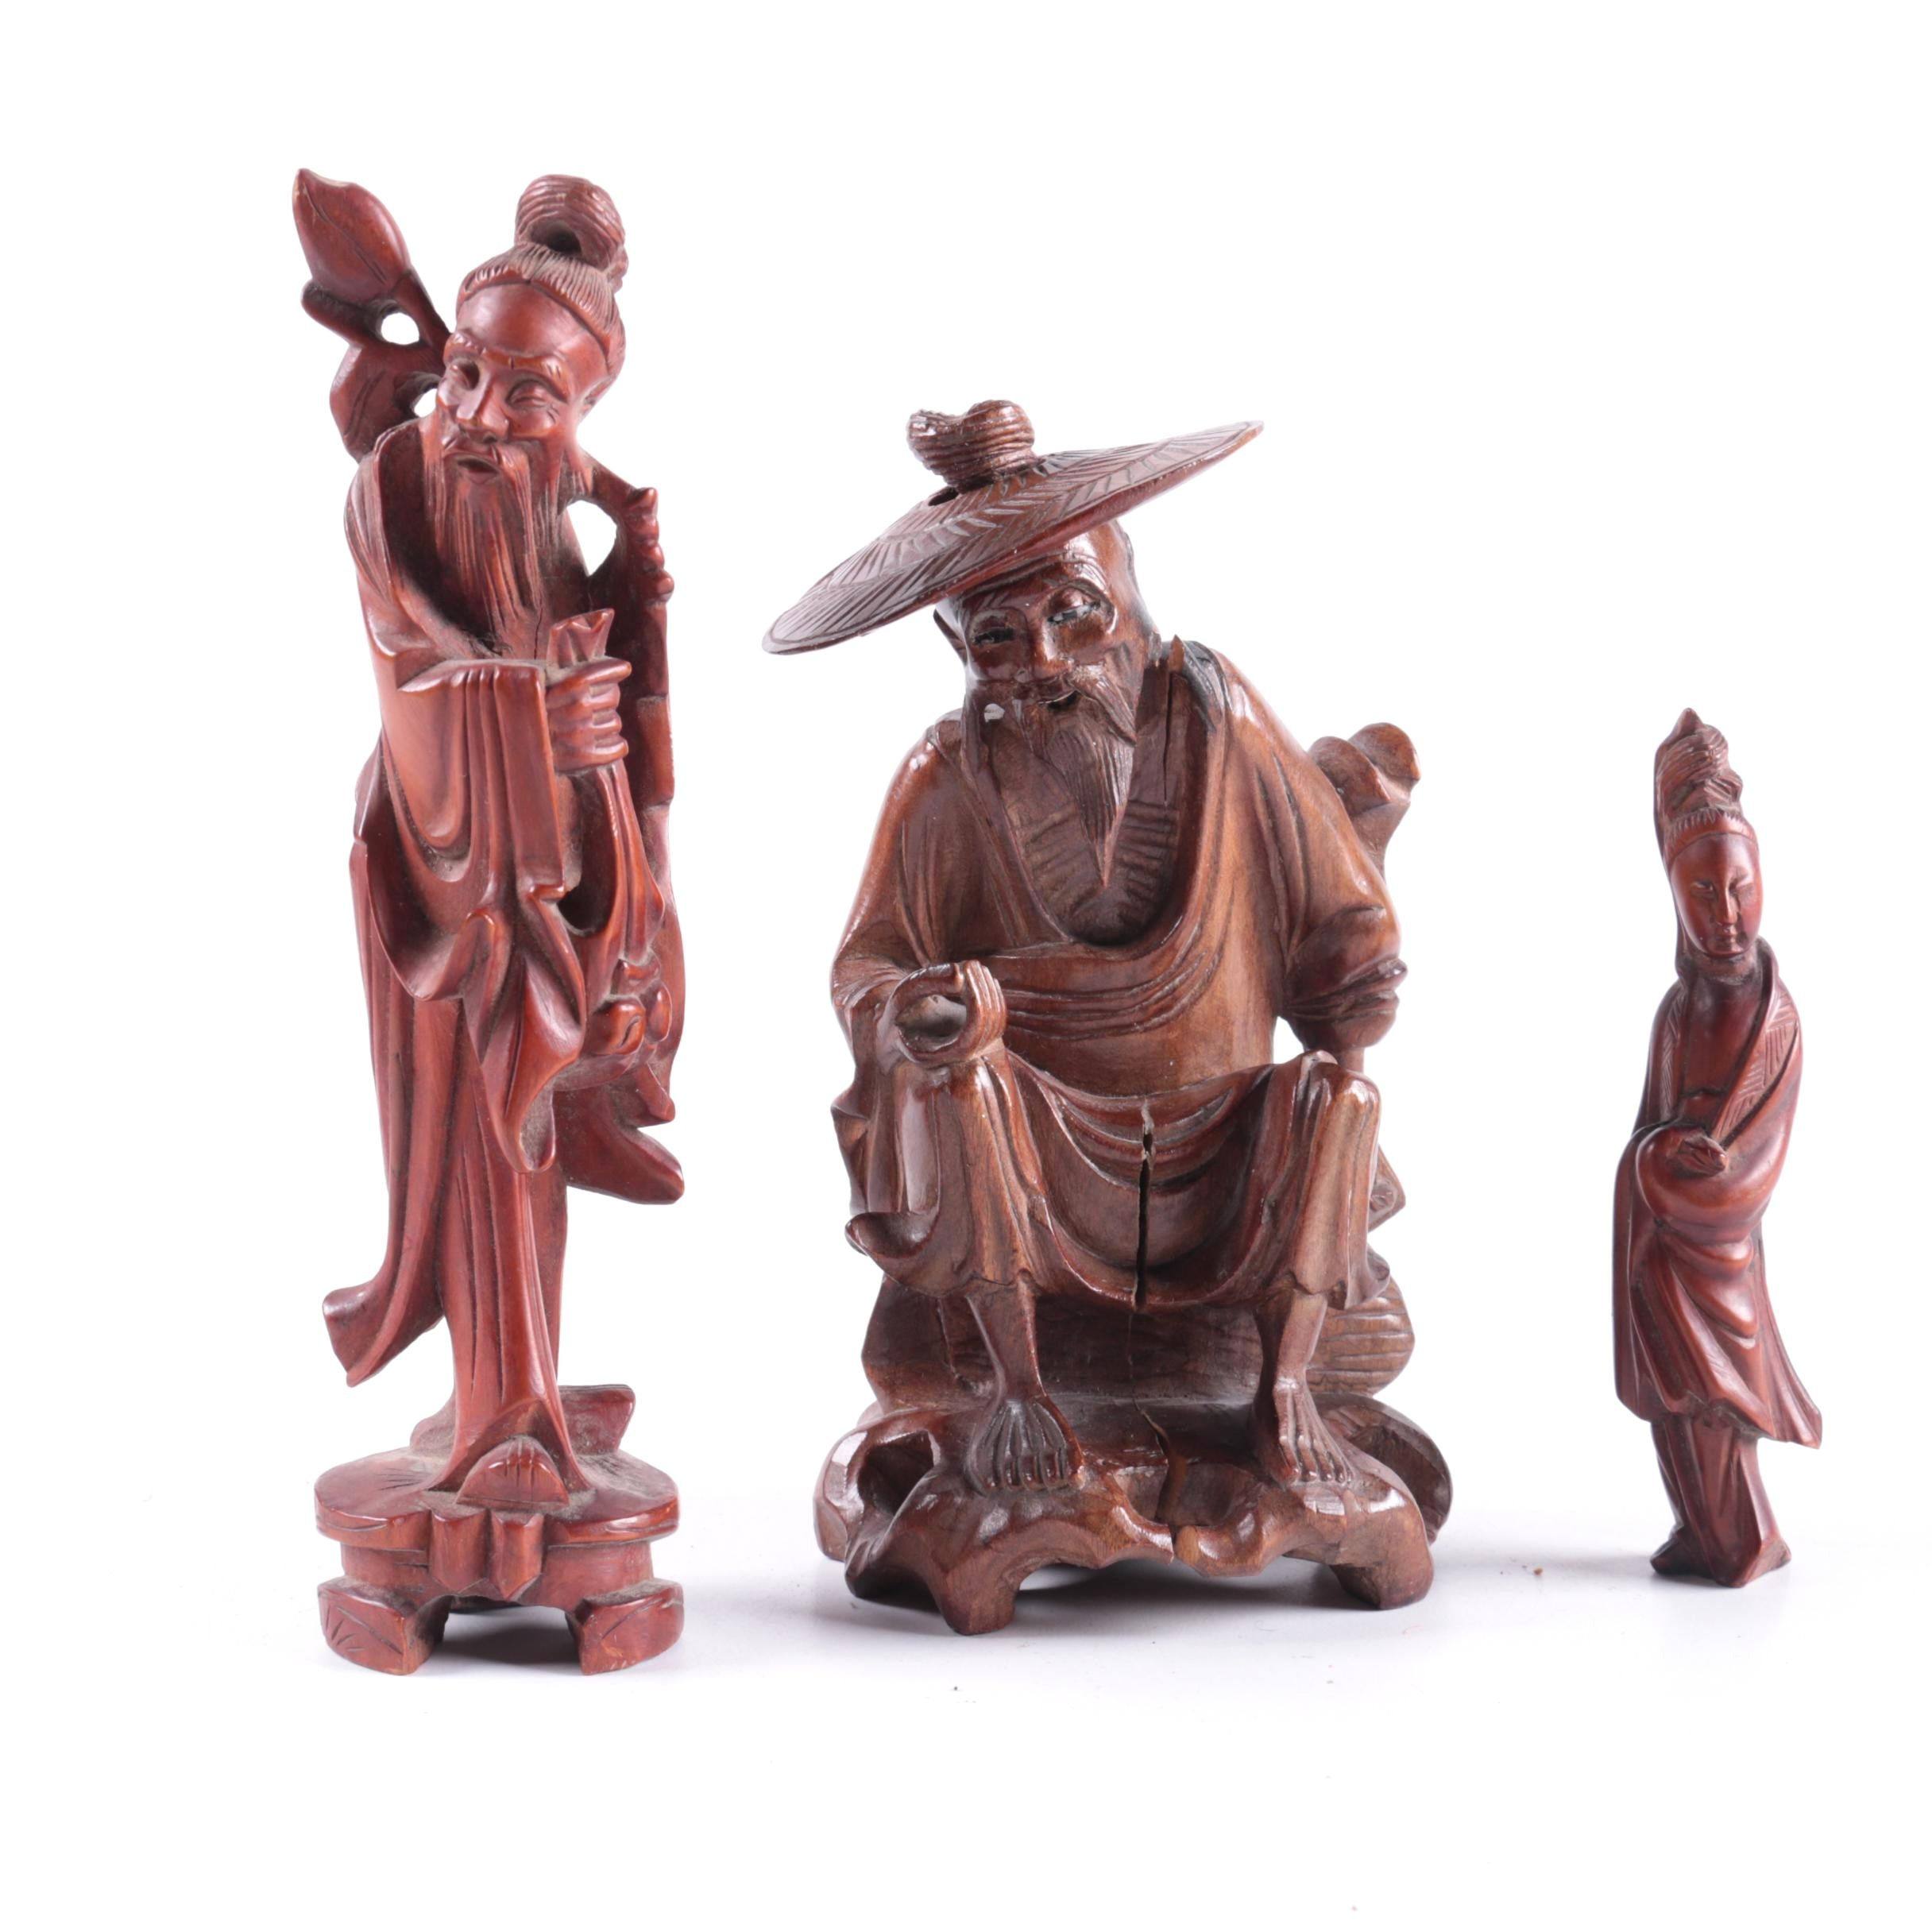 Chinese Hand-Carved Wooden Figurines